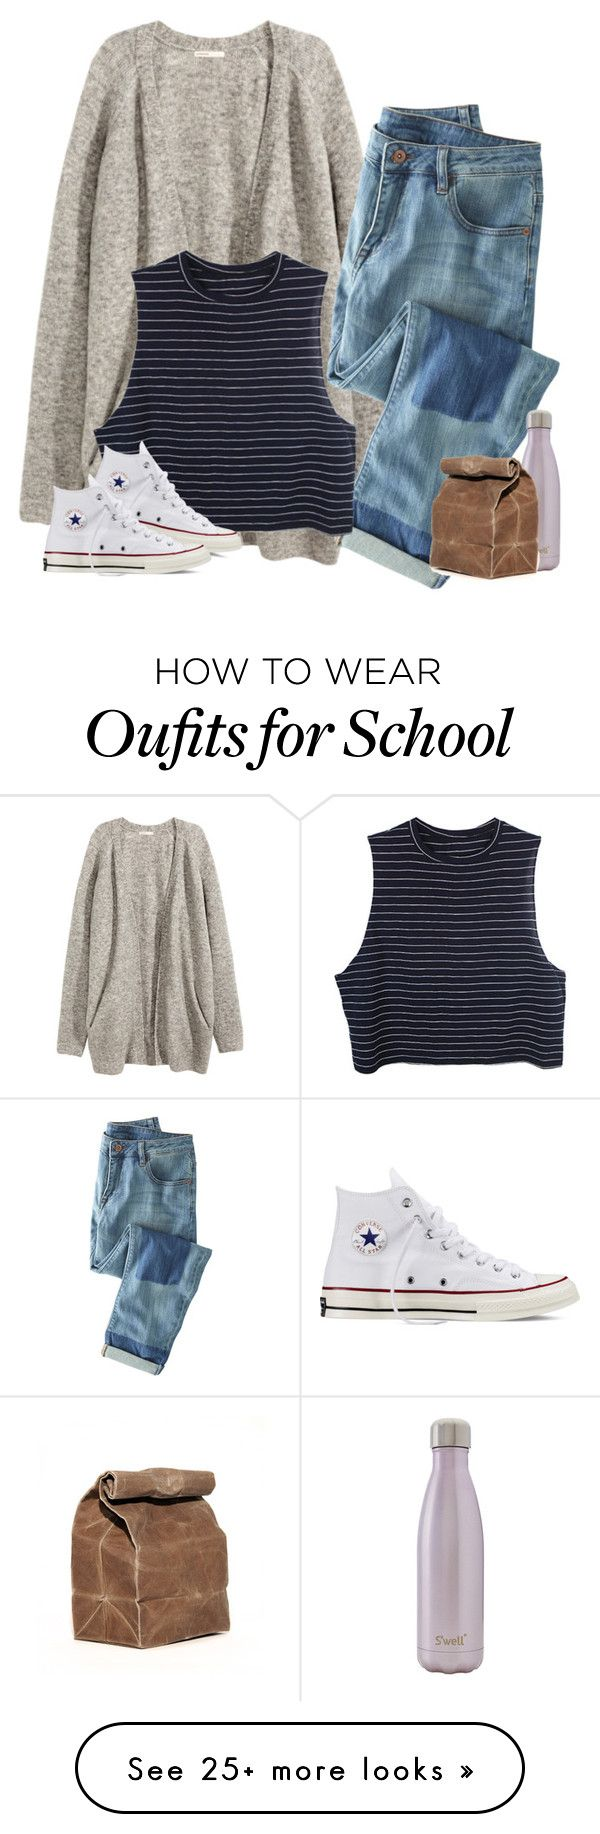 """""""School outfit"""" by rob-17 on Polyvore featuring H&M, Wrap, Converse, S'well, women's clothing, women, female, woman, misses and juniors"""